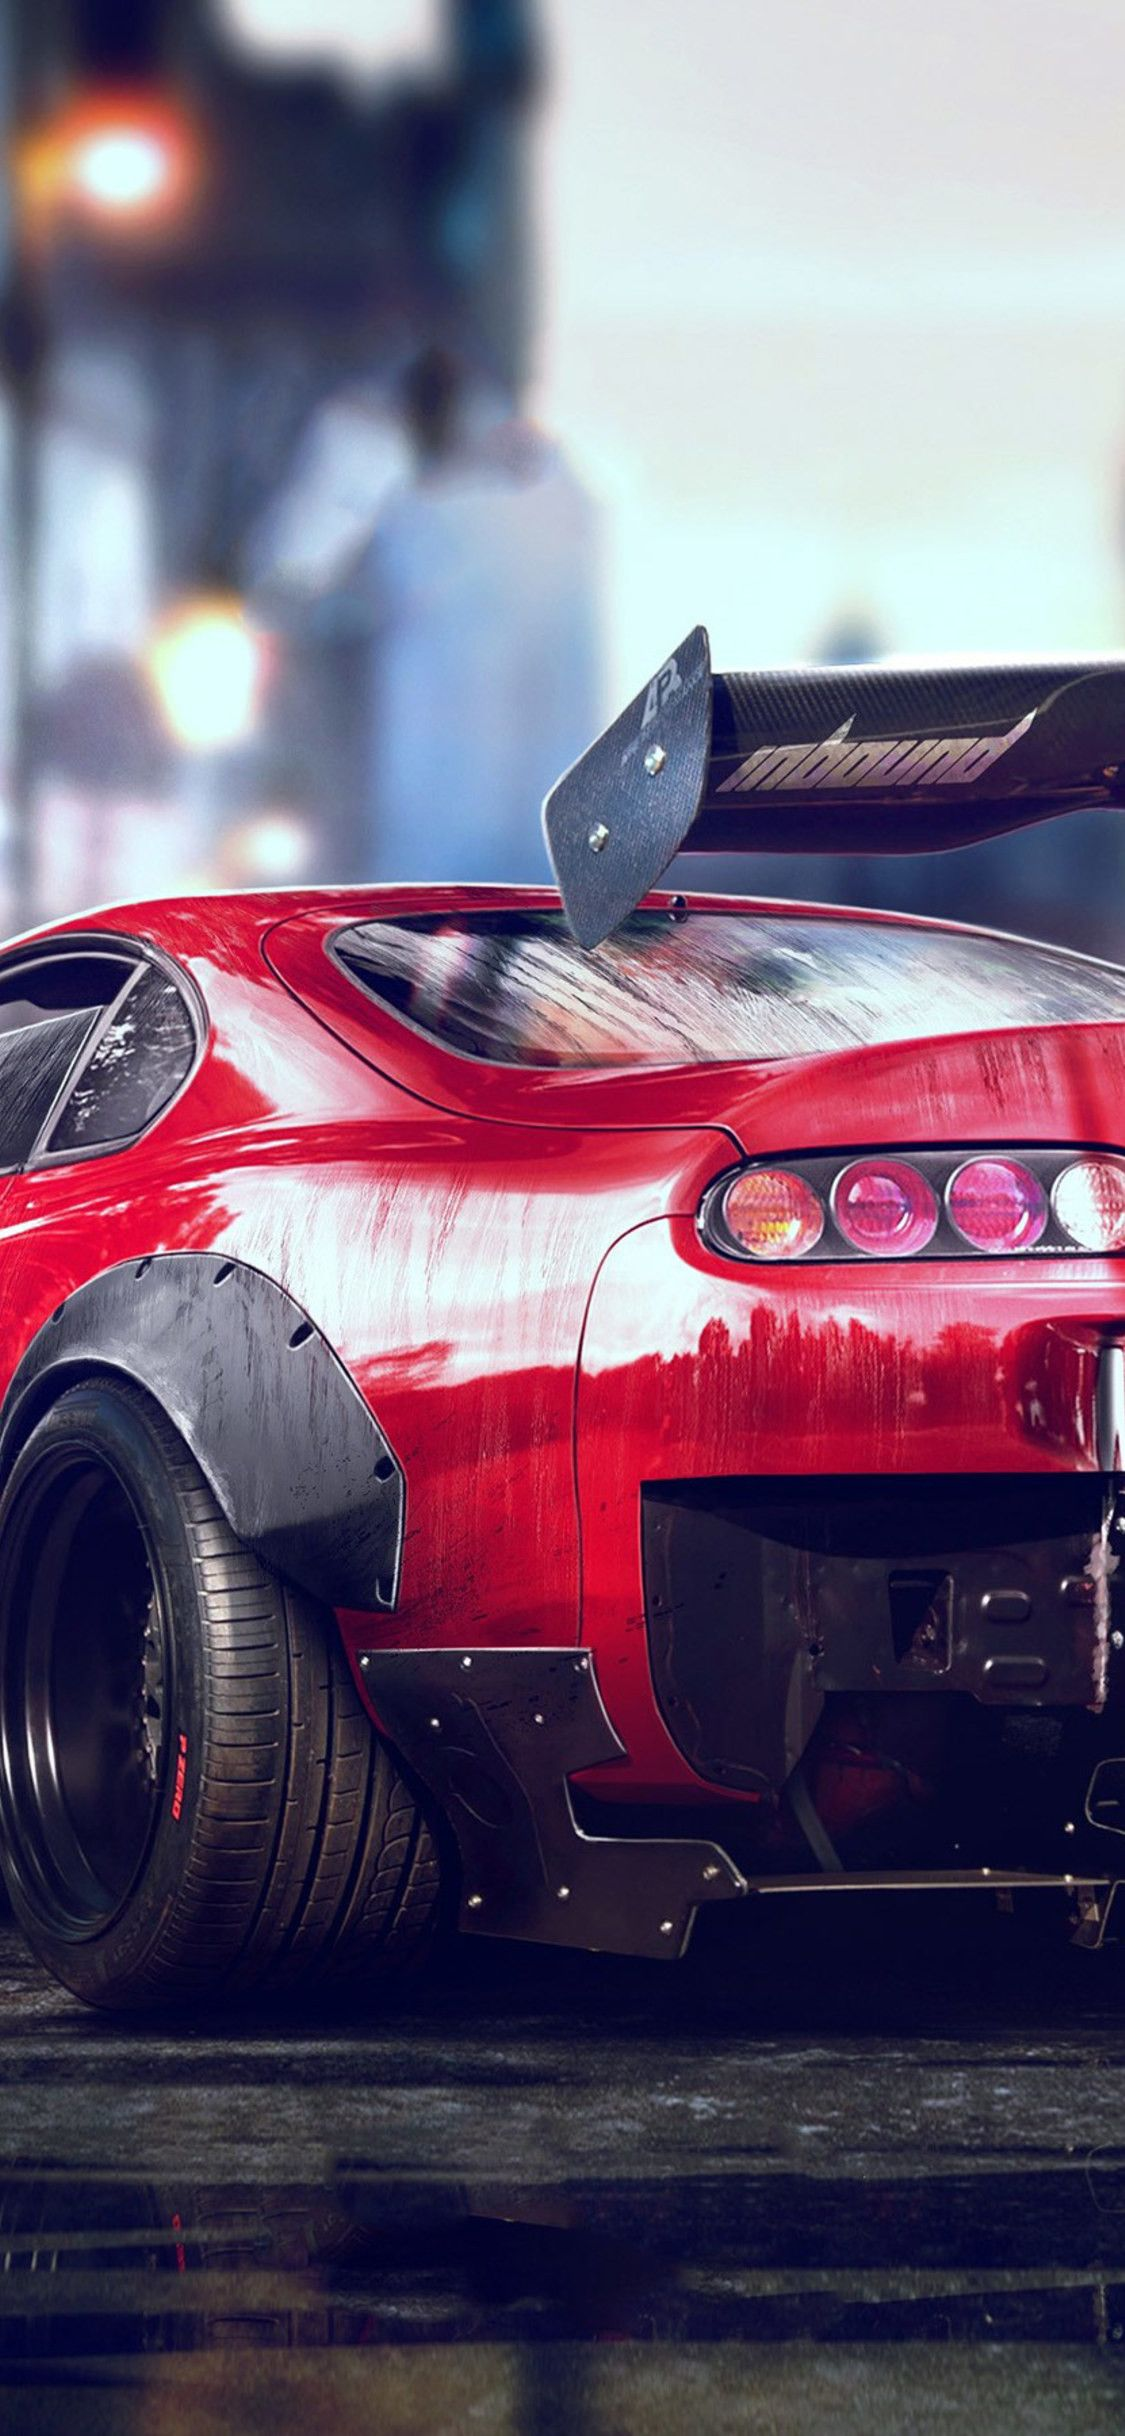 Download lively wallpaper for windows & read reviews. List Of Wallpaper Car Iphone X 2020